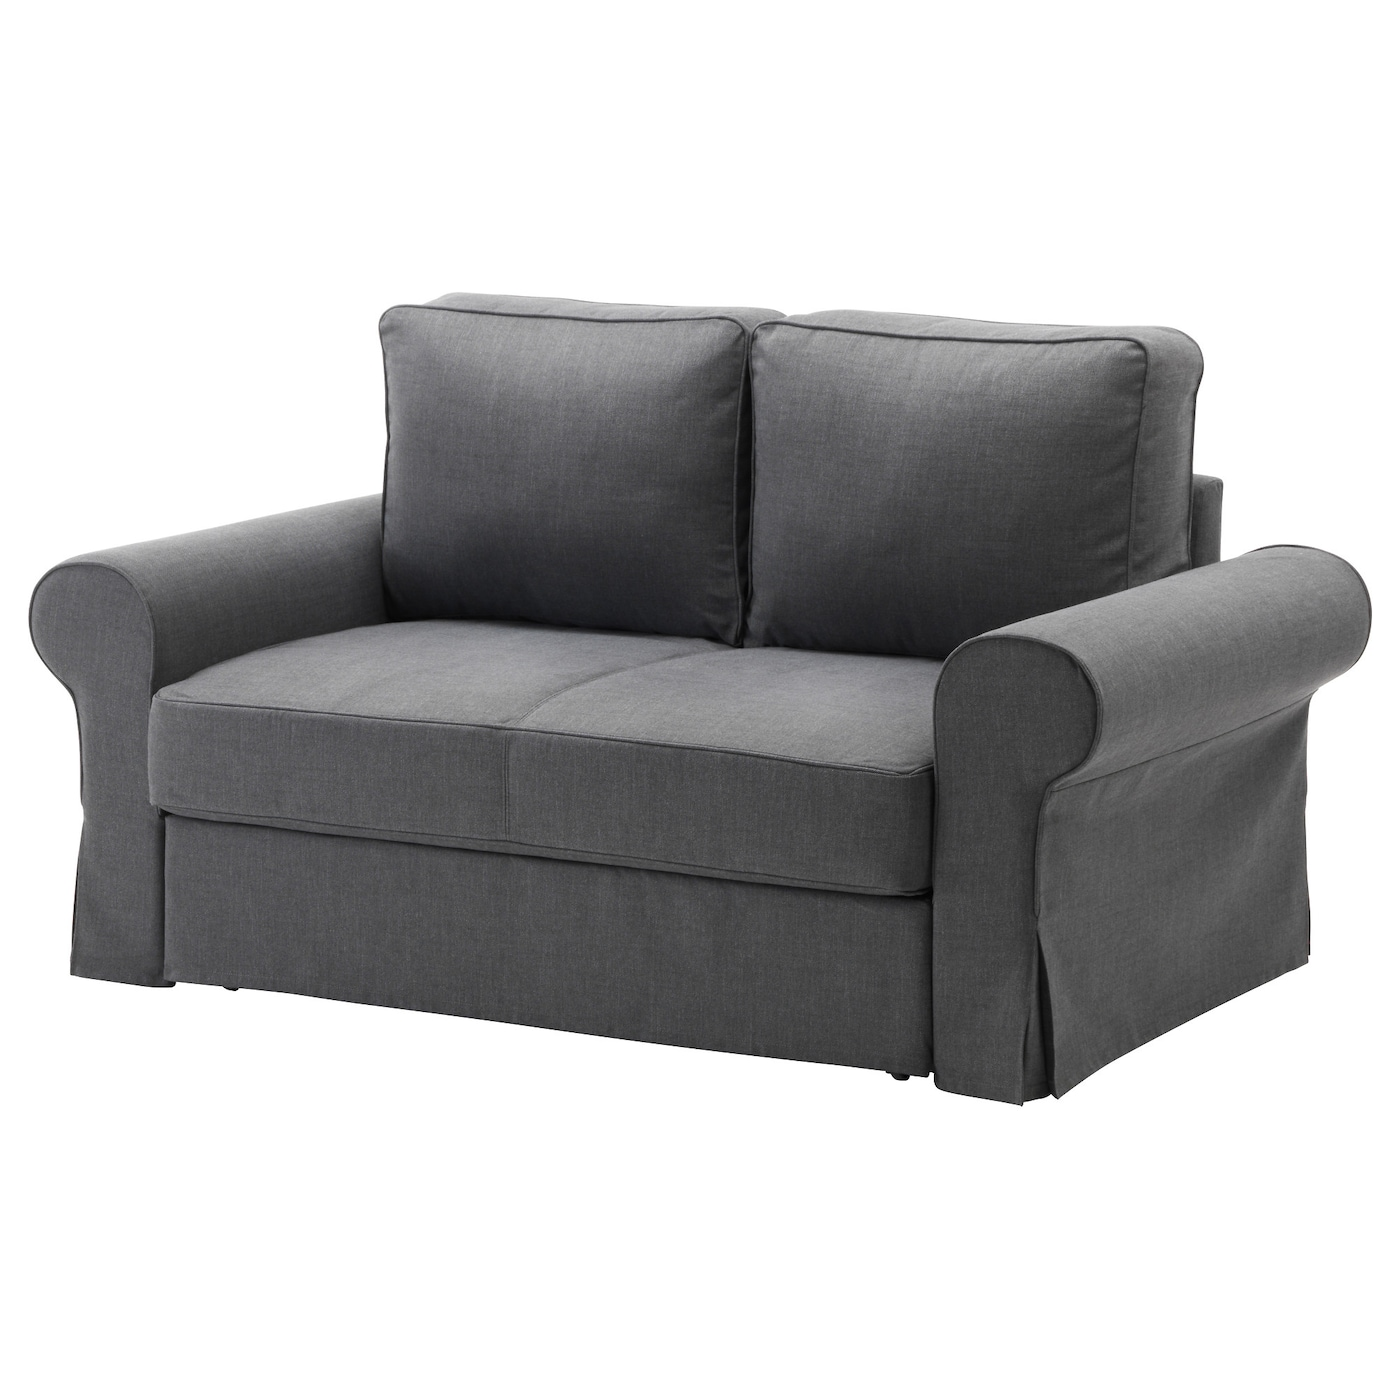 Backabro two seat sofa bed nordvalla dark grey ikea - Petit canape convertible 2 places pas cher ...